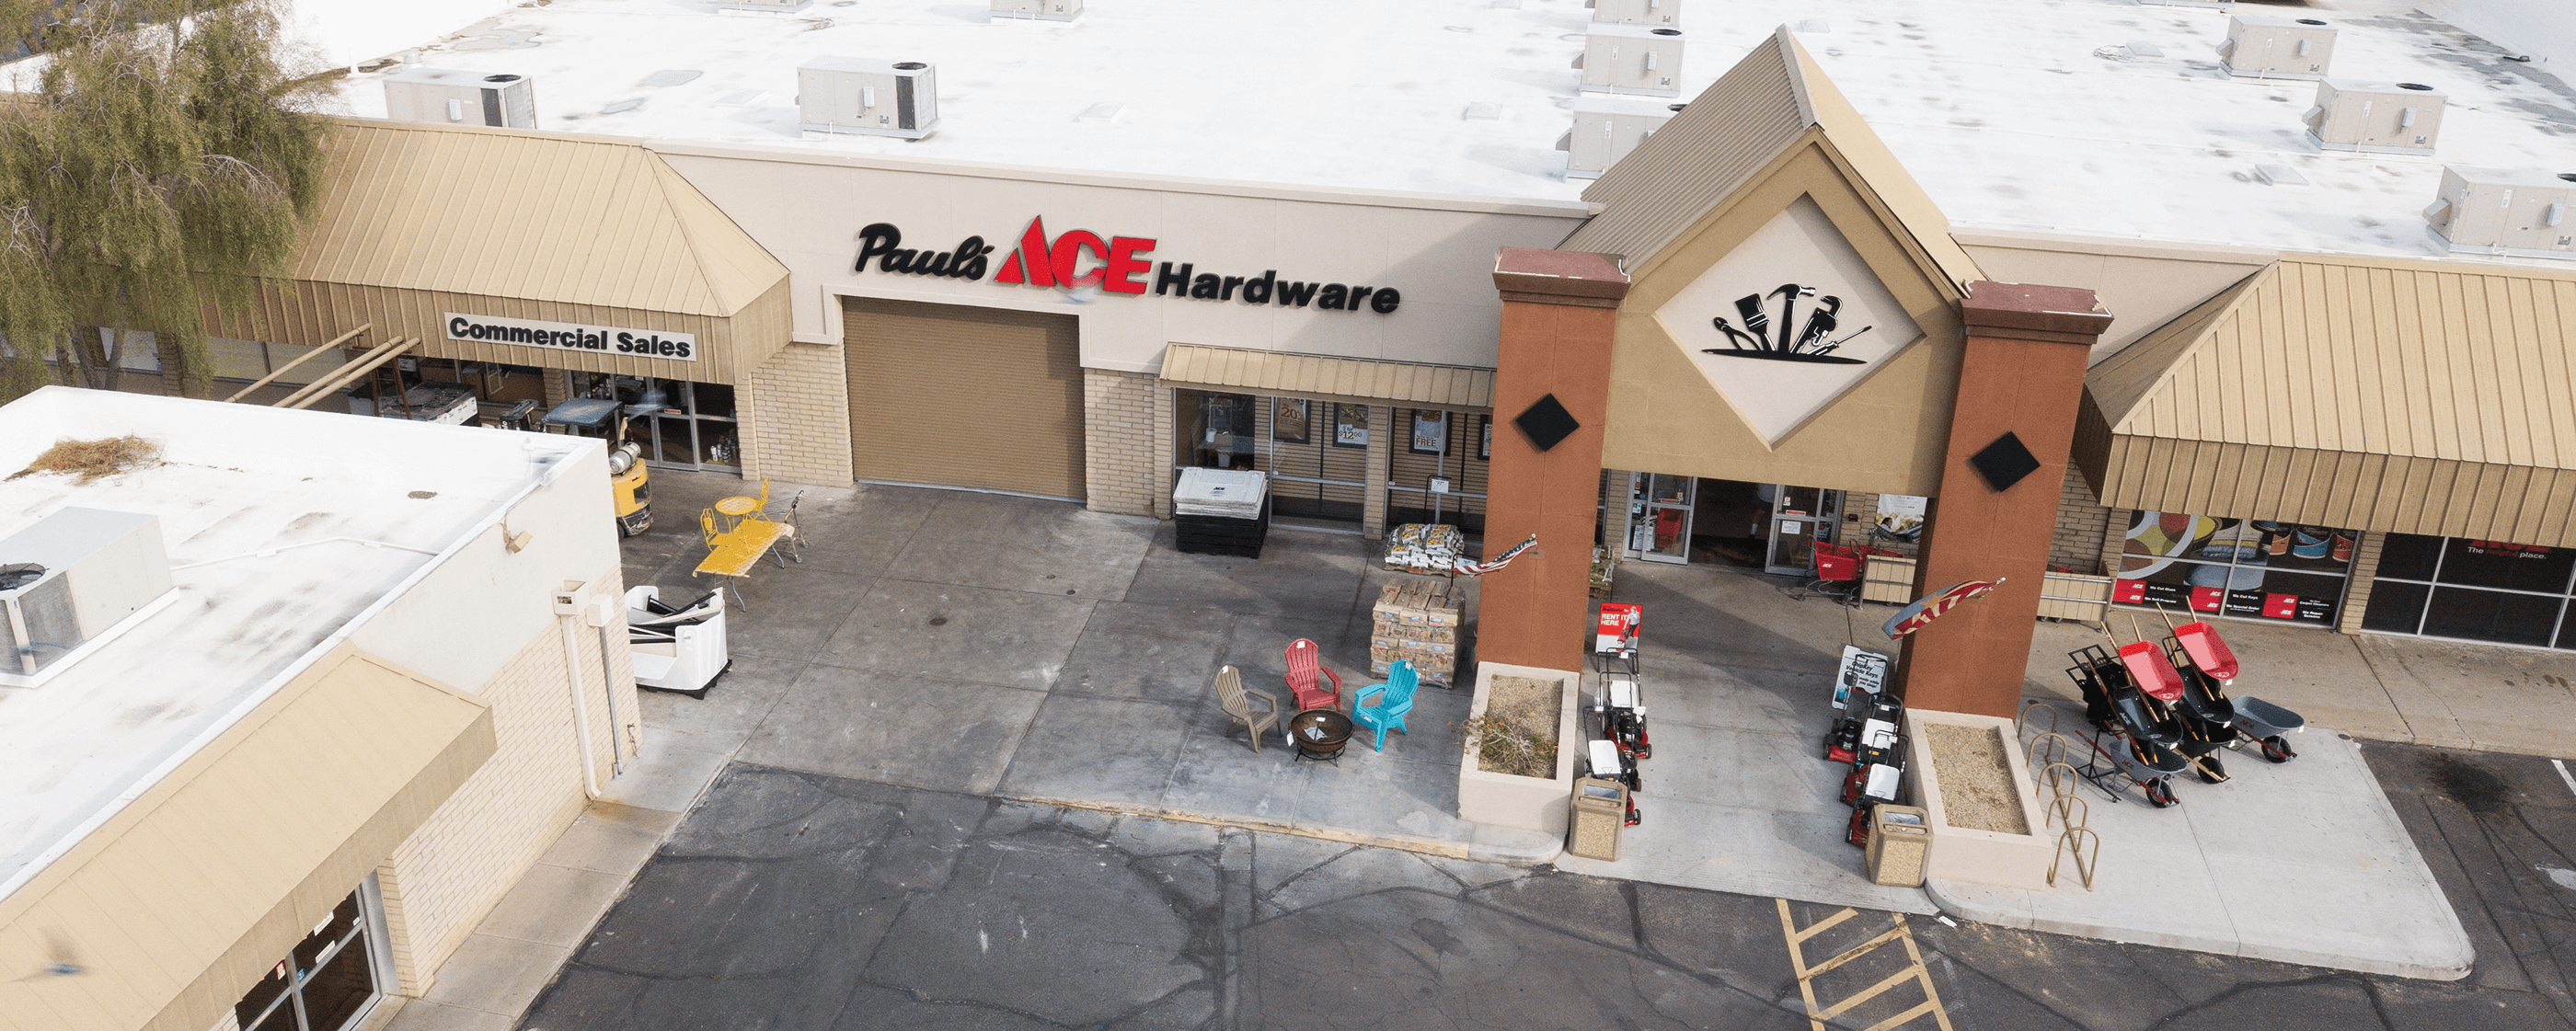 Scottsdale Ace Hardware